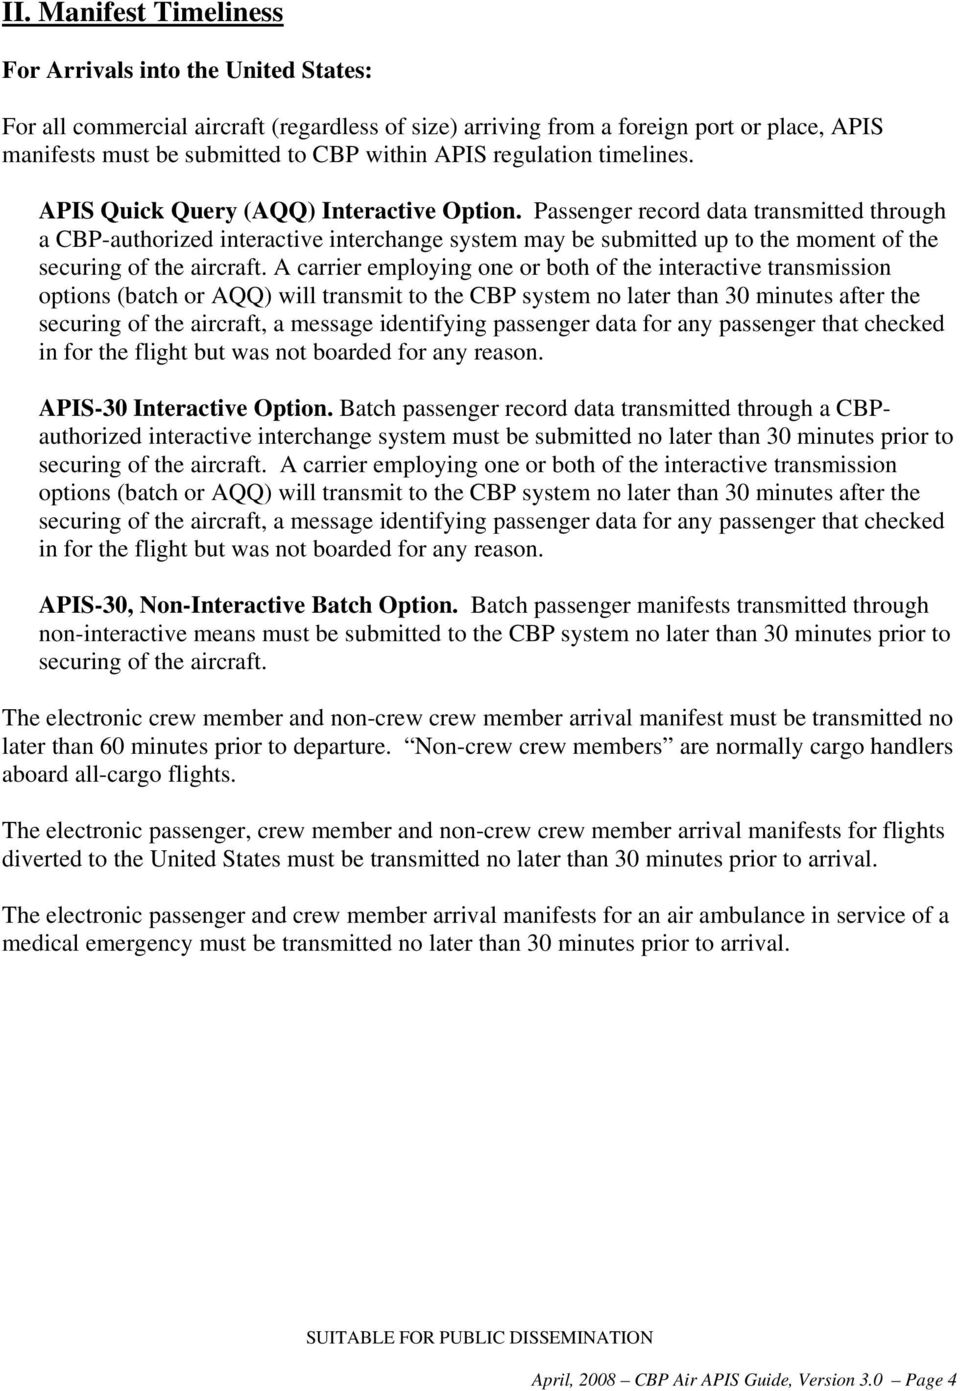 Passenger record data transmitted through a CBP-authorized interactive interchange system may be submitted up to the moment of the securing of the aircraft.